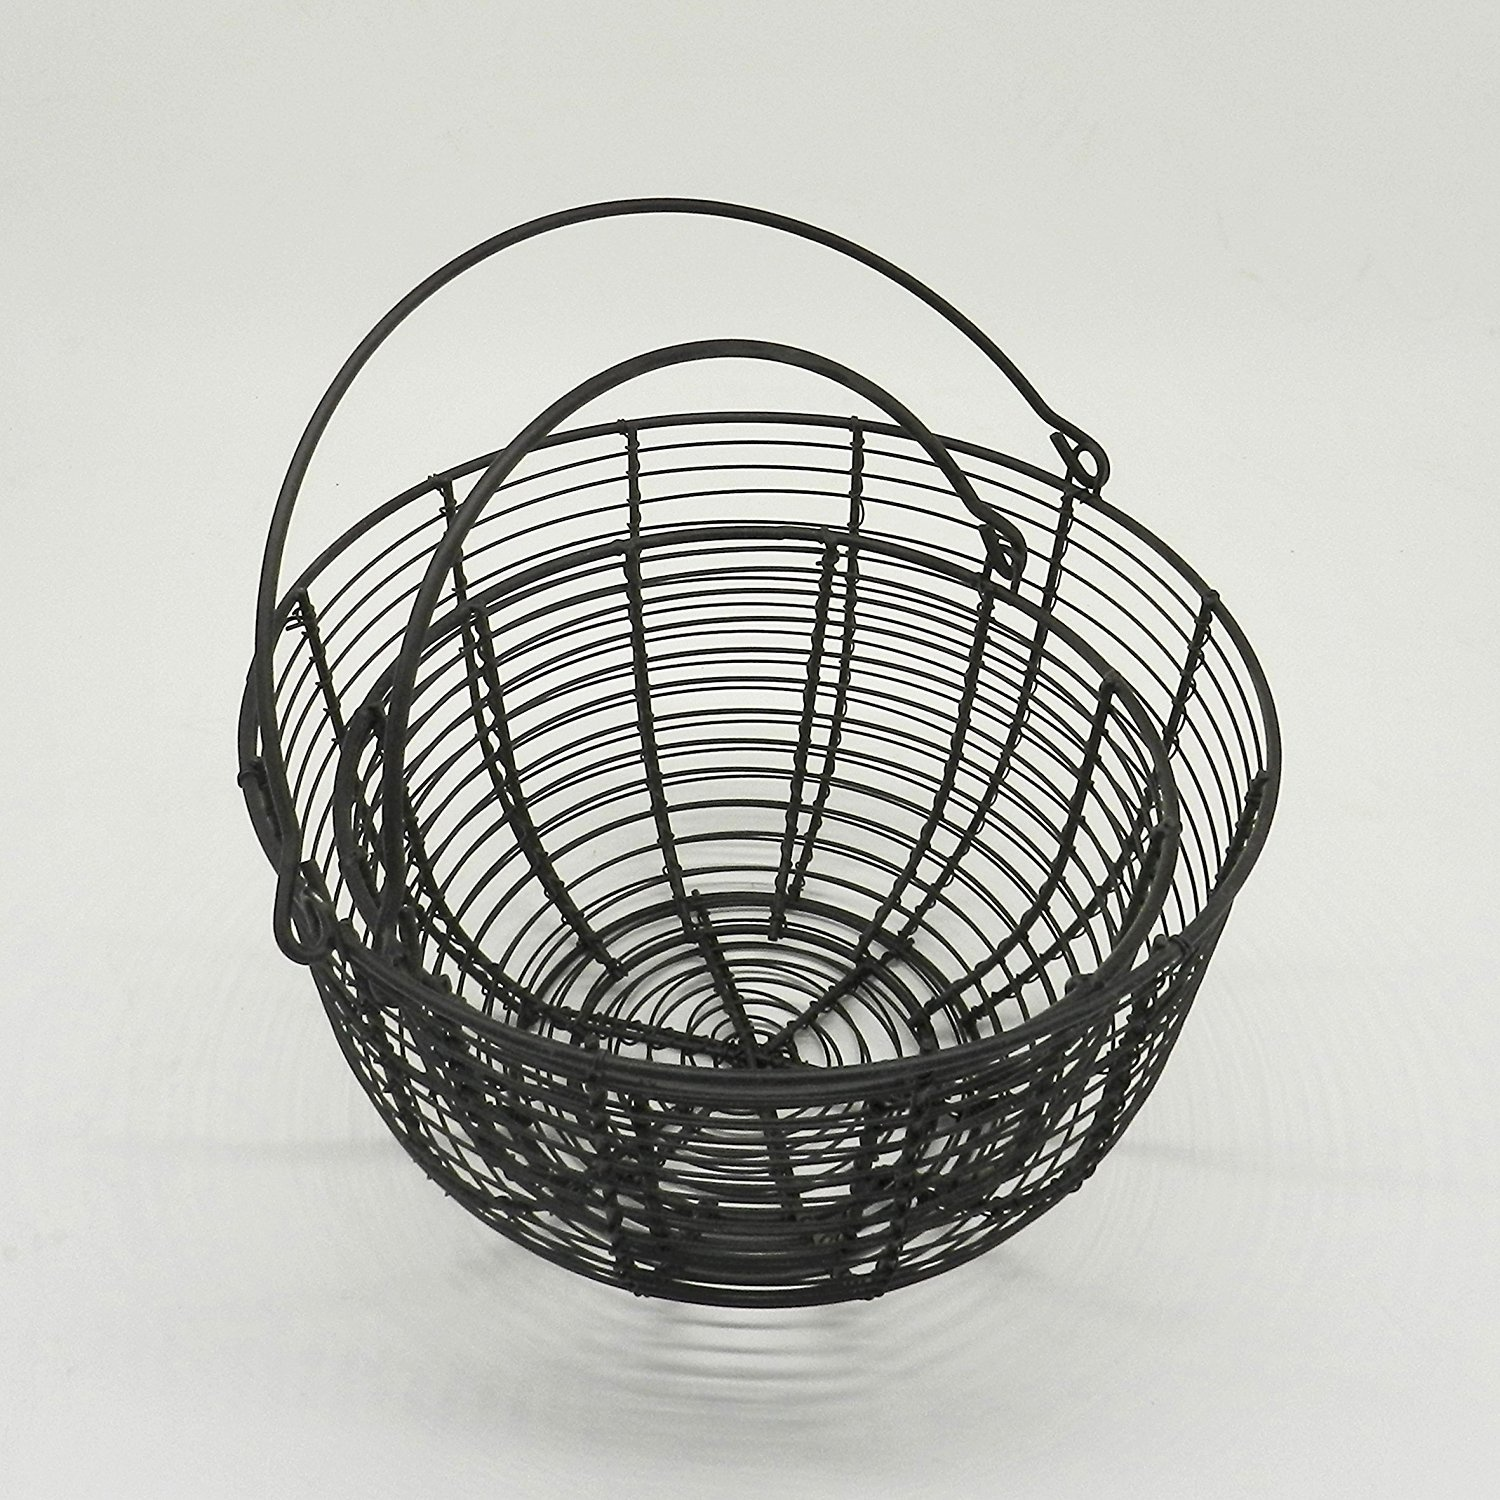 CVHOMEDECO. Round Metal Wire Egg Baskets Wire Fruit Baskets with ...